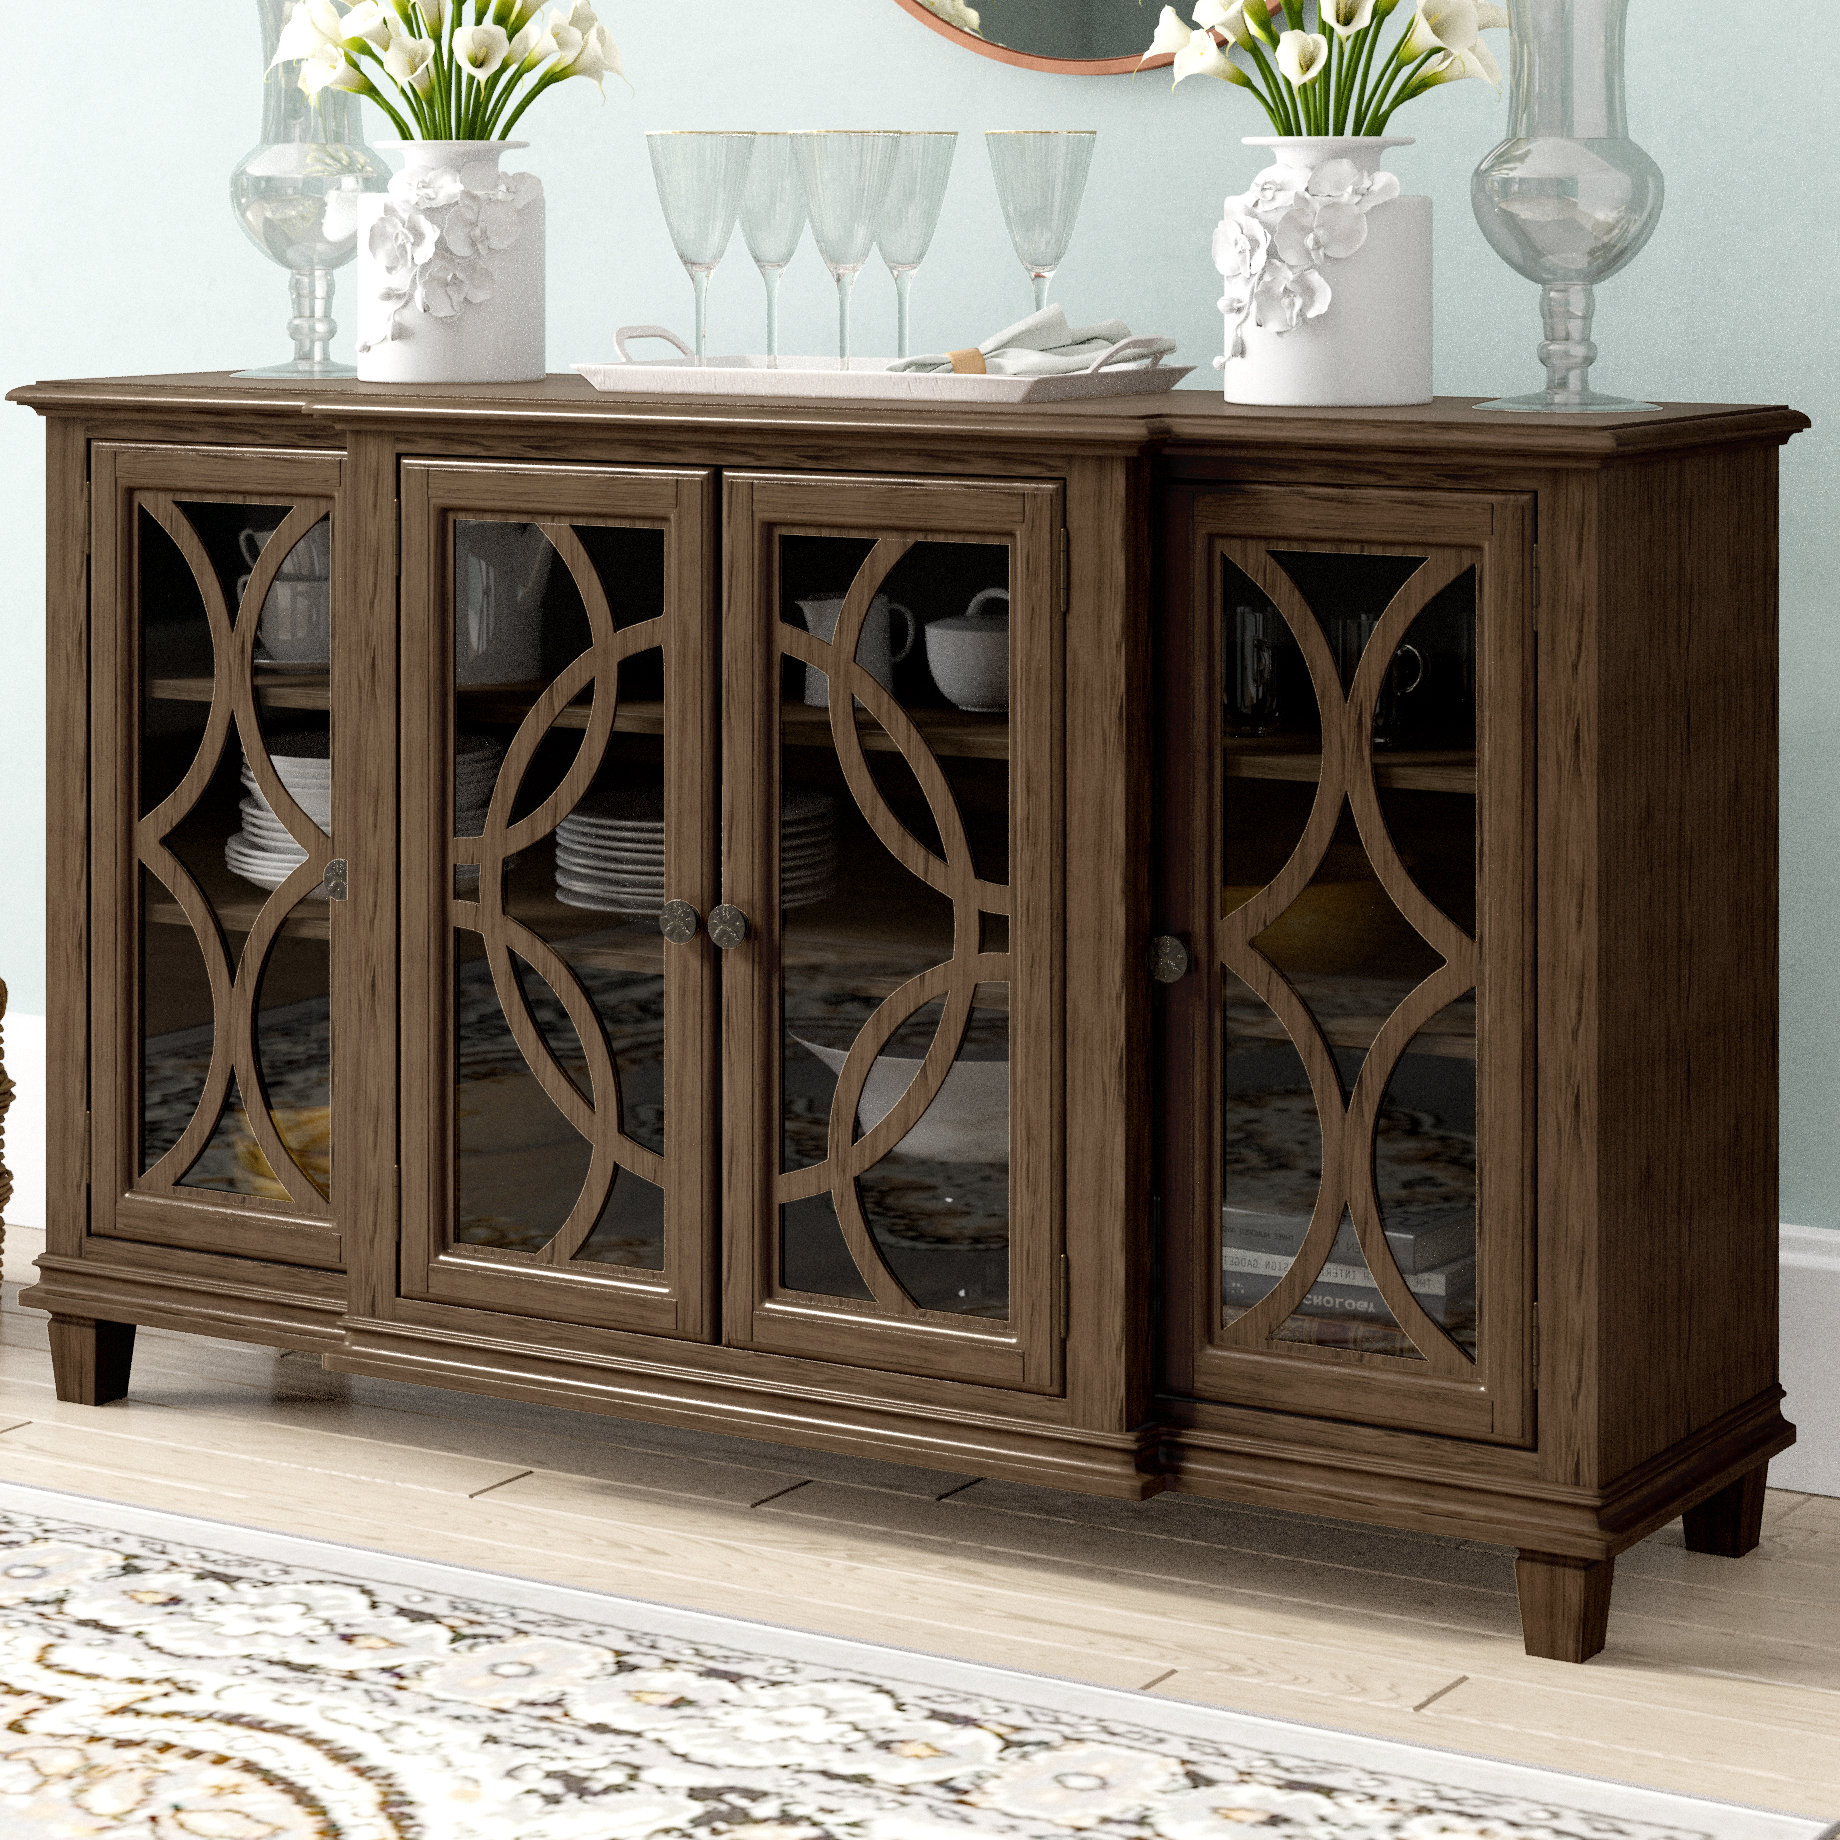 Farmhouse & Rustic Dark Brown Wood Sideboards & Buffets Intended For Well Known Seiling Sideboards (View 9 of 20)